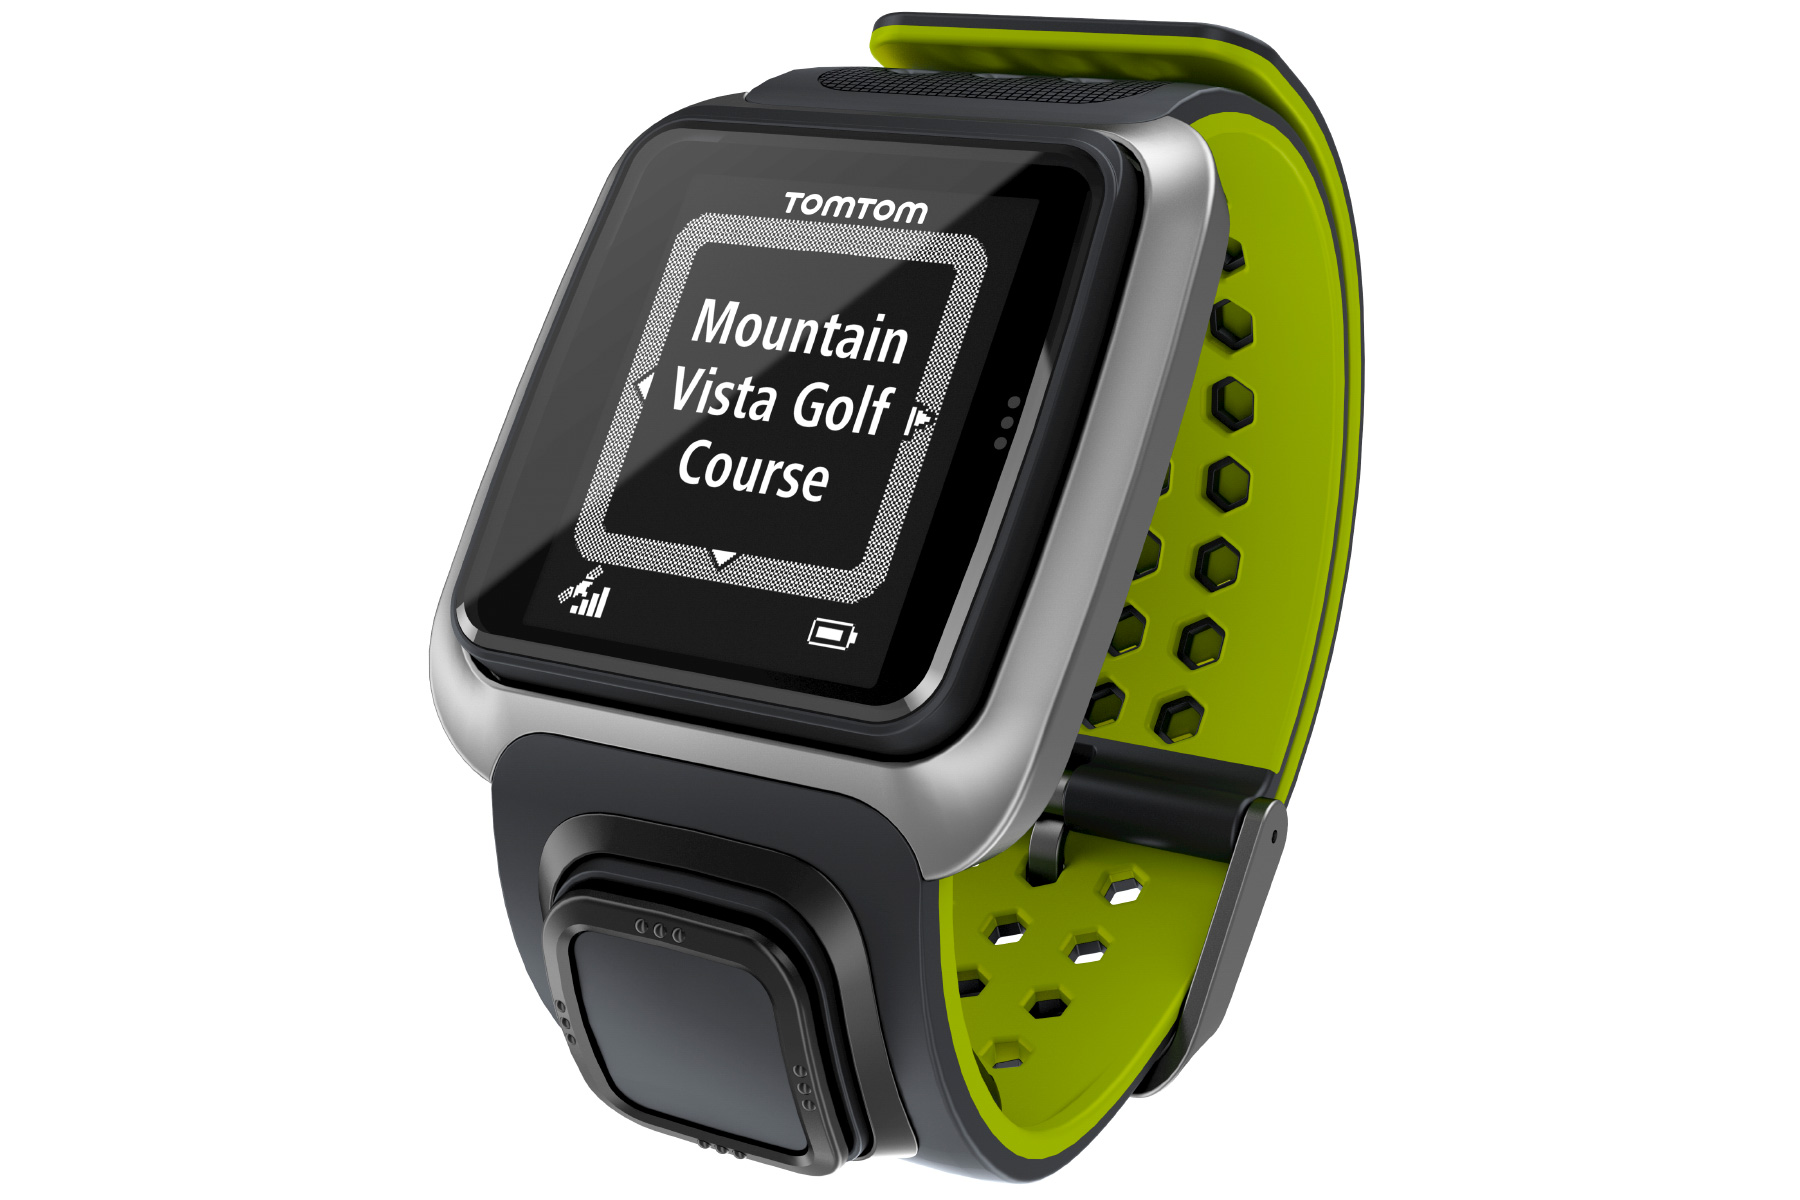 tomtom golfer gps watch from american golf. Black Bedroom Furniture Sets. Home Design Ideas